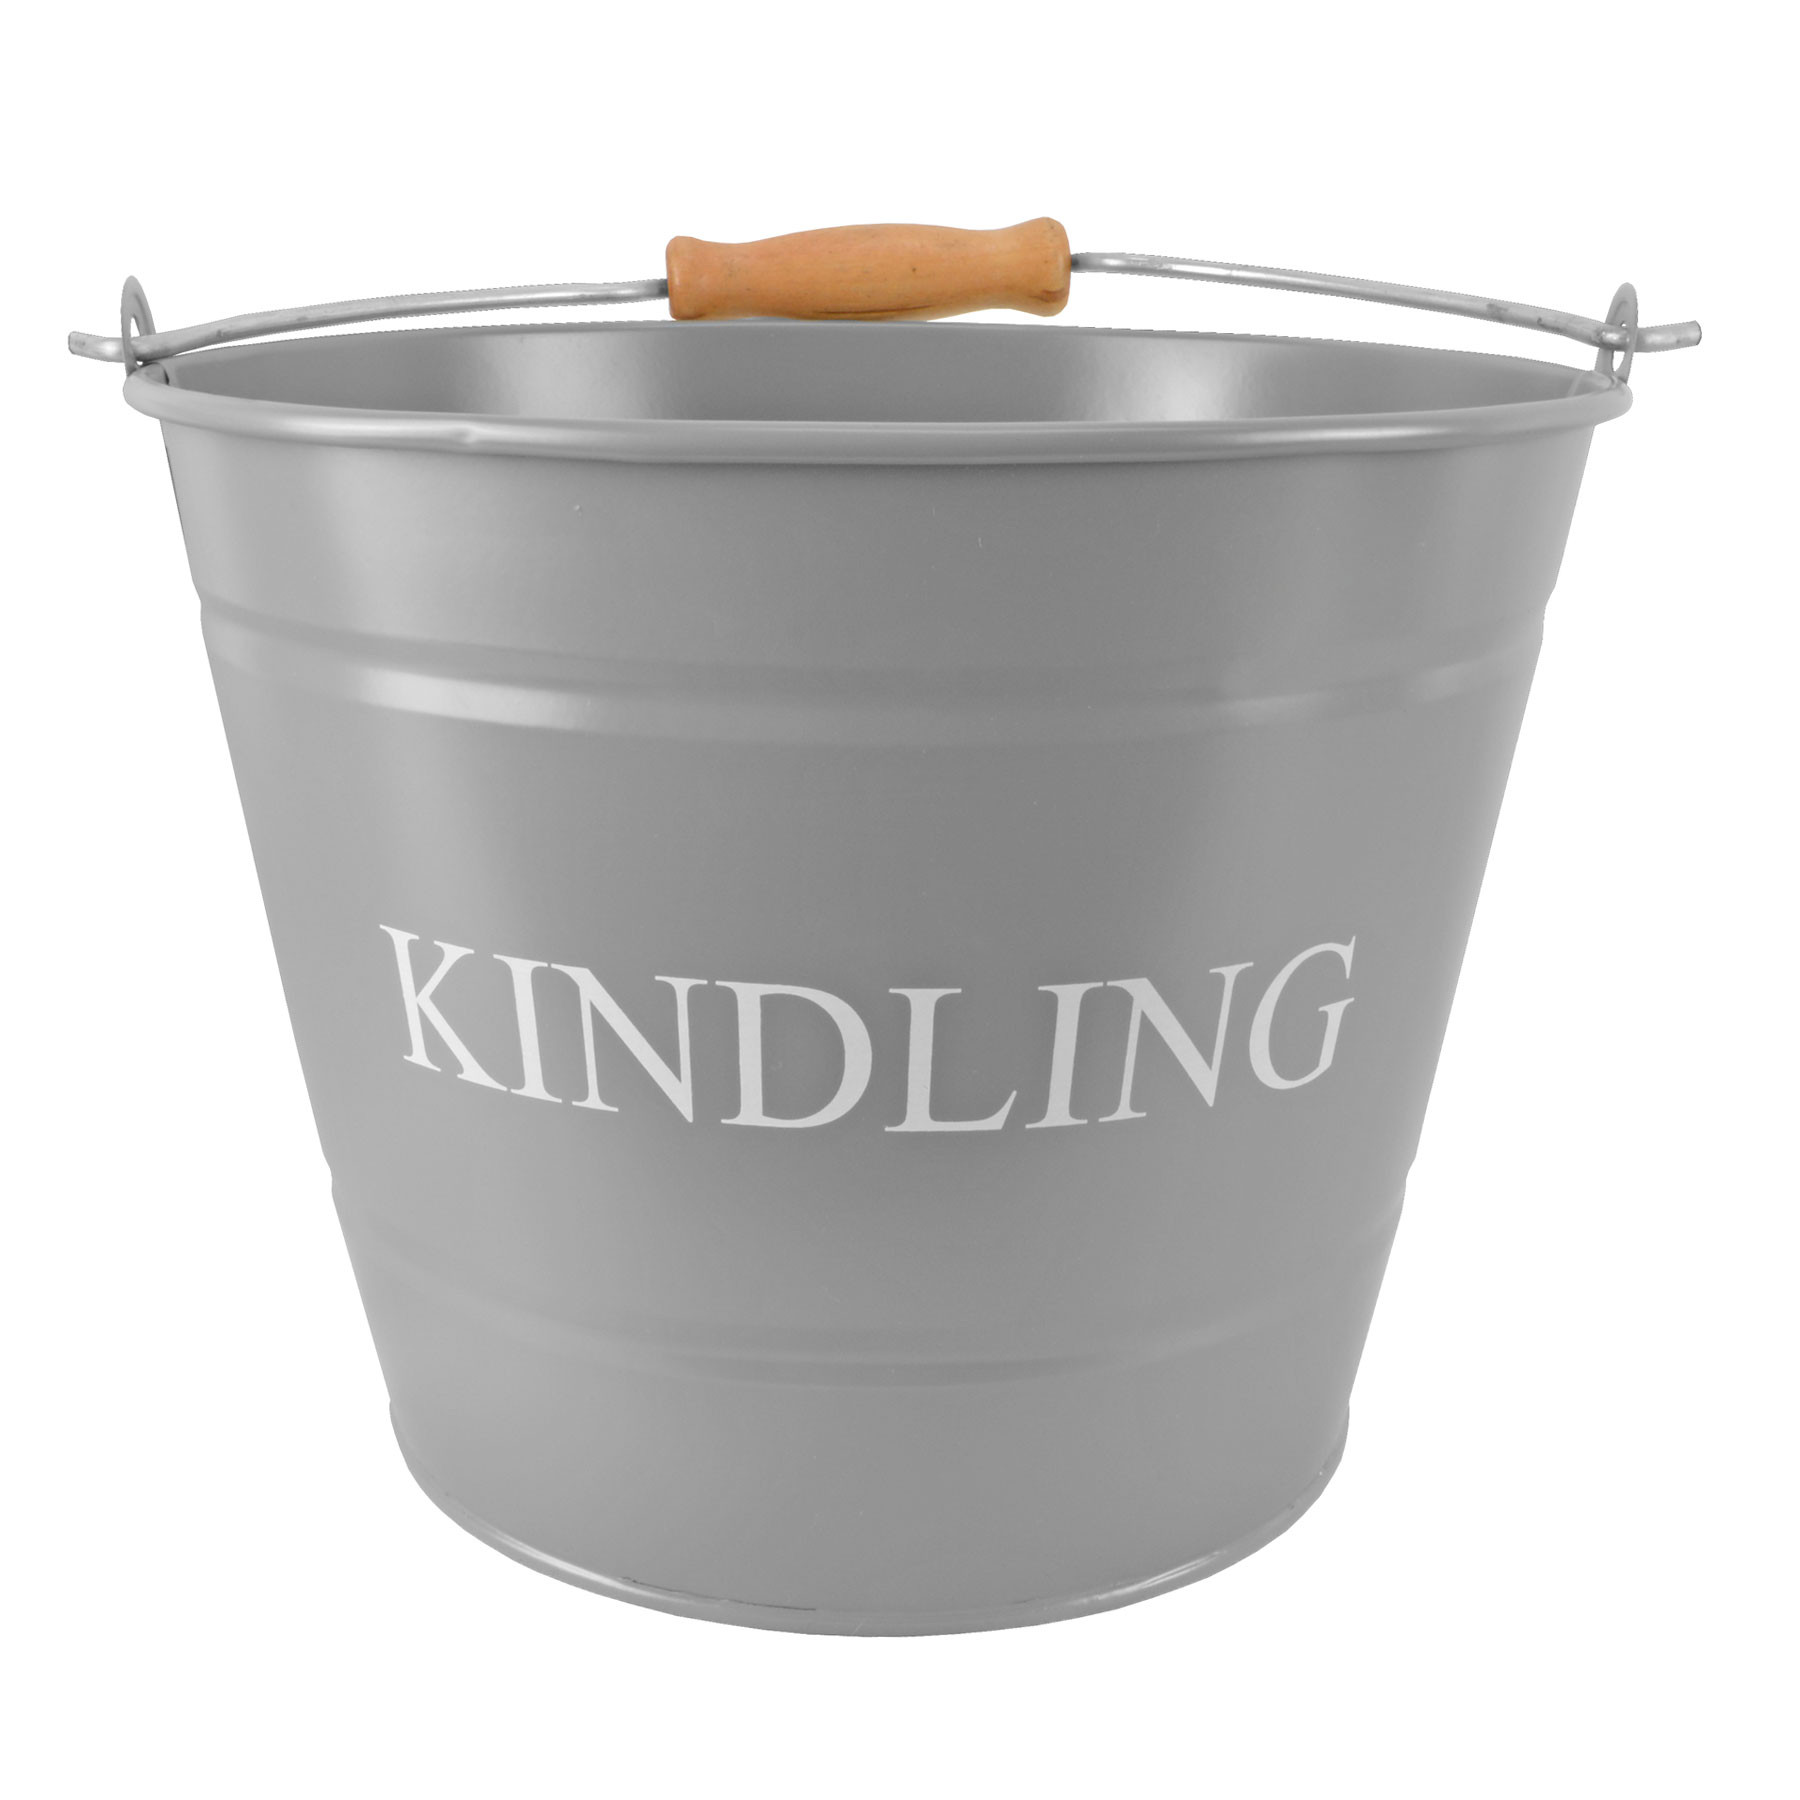 Small Kindling Bucket with handle